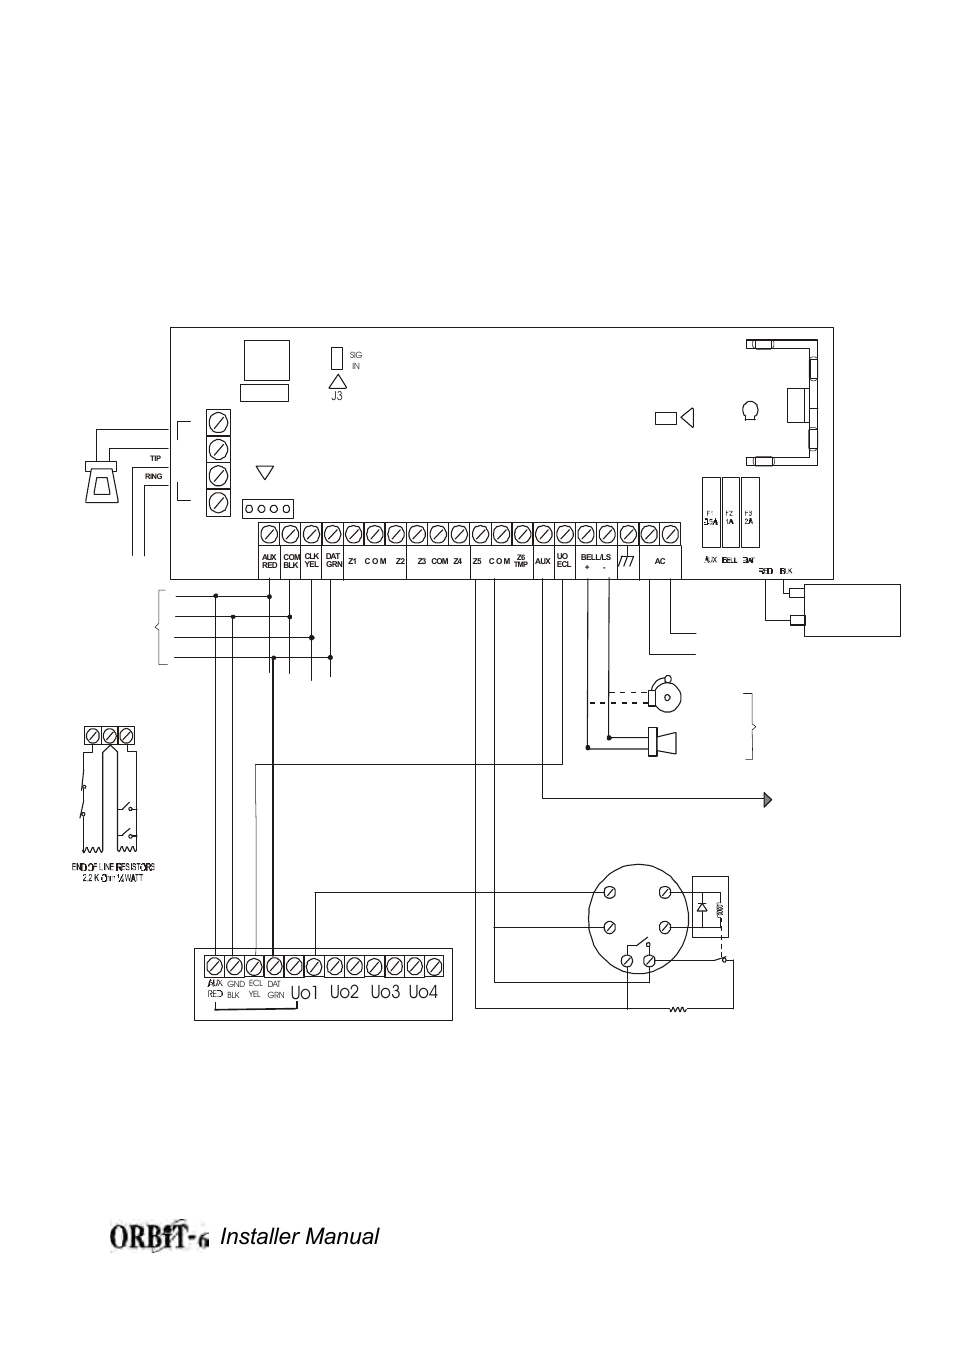 hight resolution of orbit 6 wiring diagram figure 1b installer manual 33 uo1 uo2 uo3 orbit 6